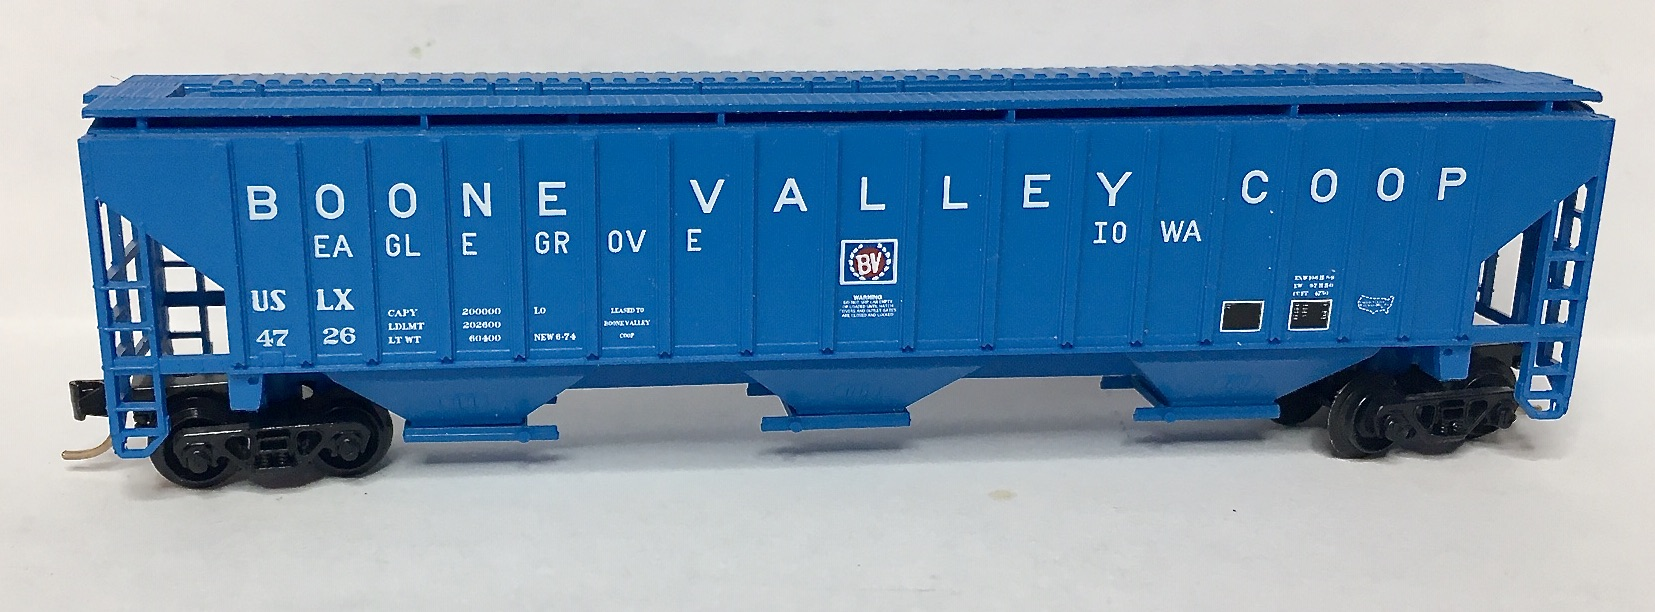 N Scale - Red Caboose - RN-15606-(  ) - Covered Hopper, 3-Bay, PS2-CD 4750 - Boone Valley Coop - 4726